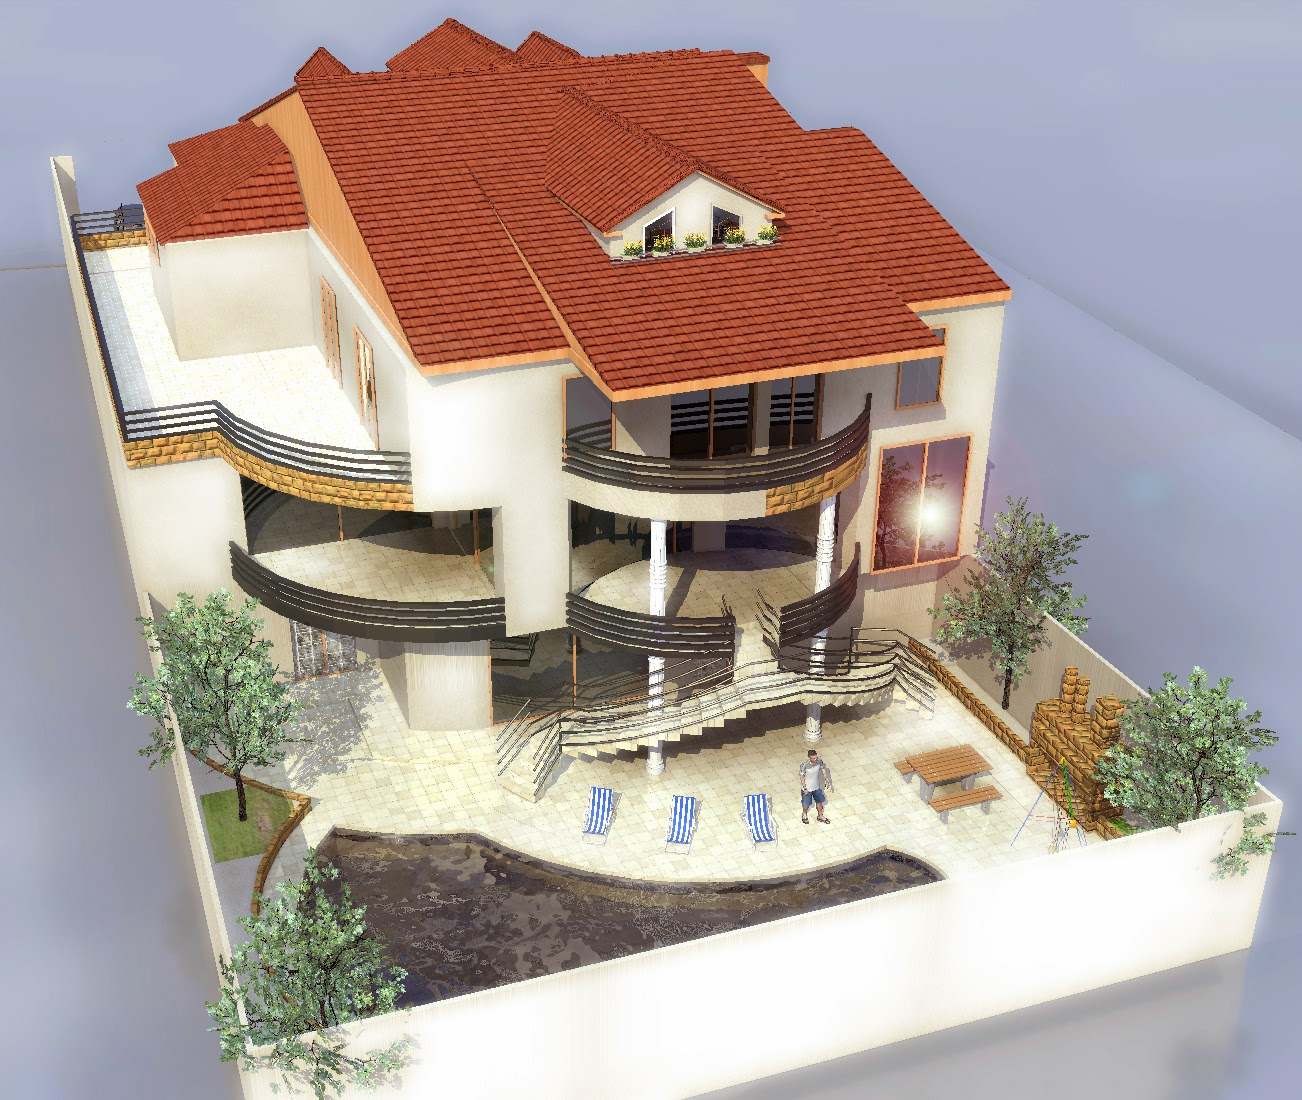 Engineering et architecture plan de maison for Plan de maison moderne au cameroun